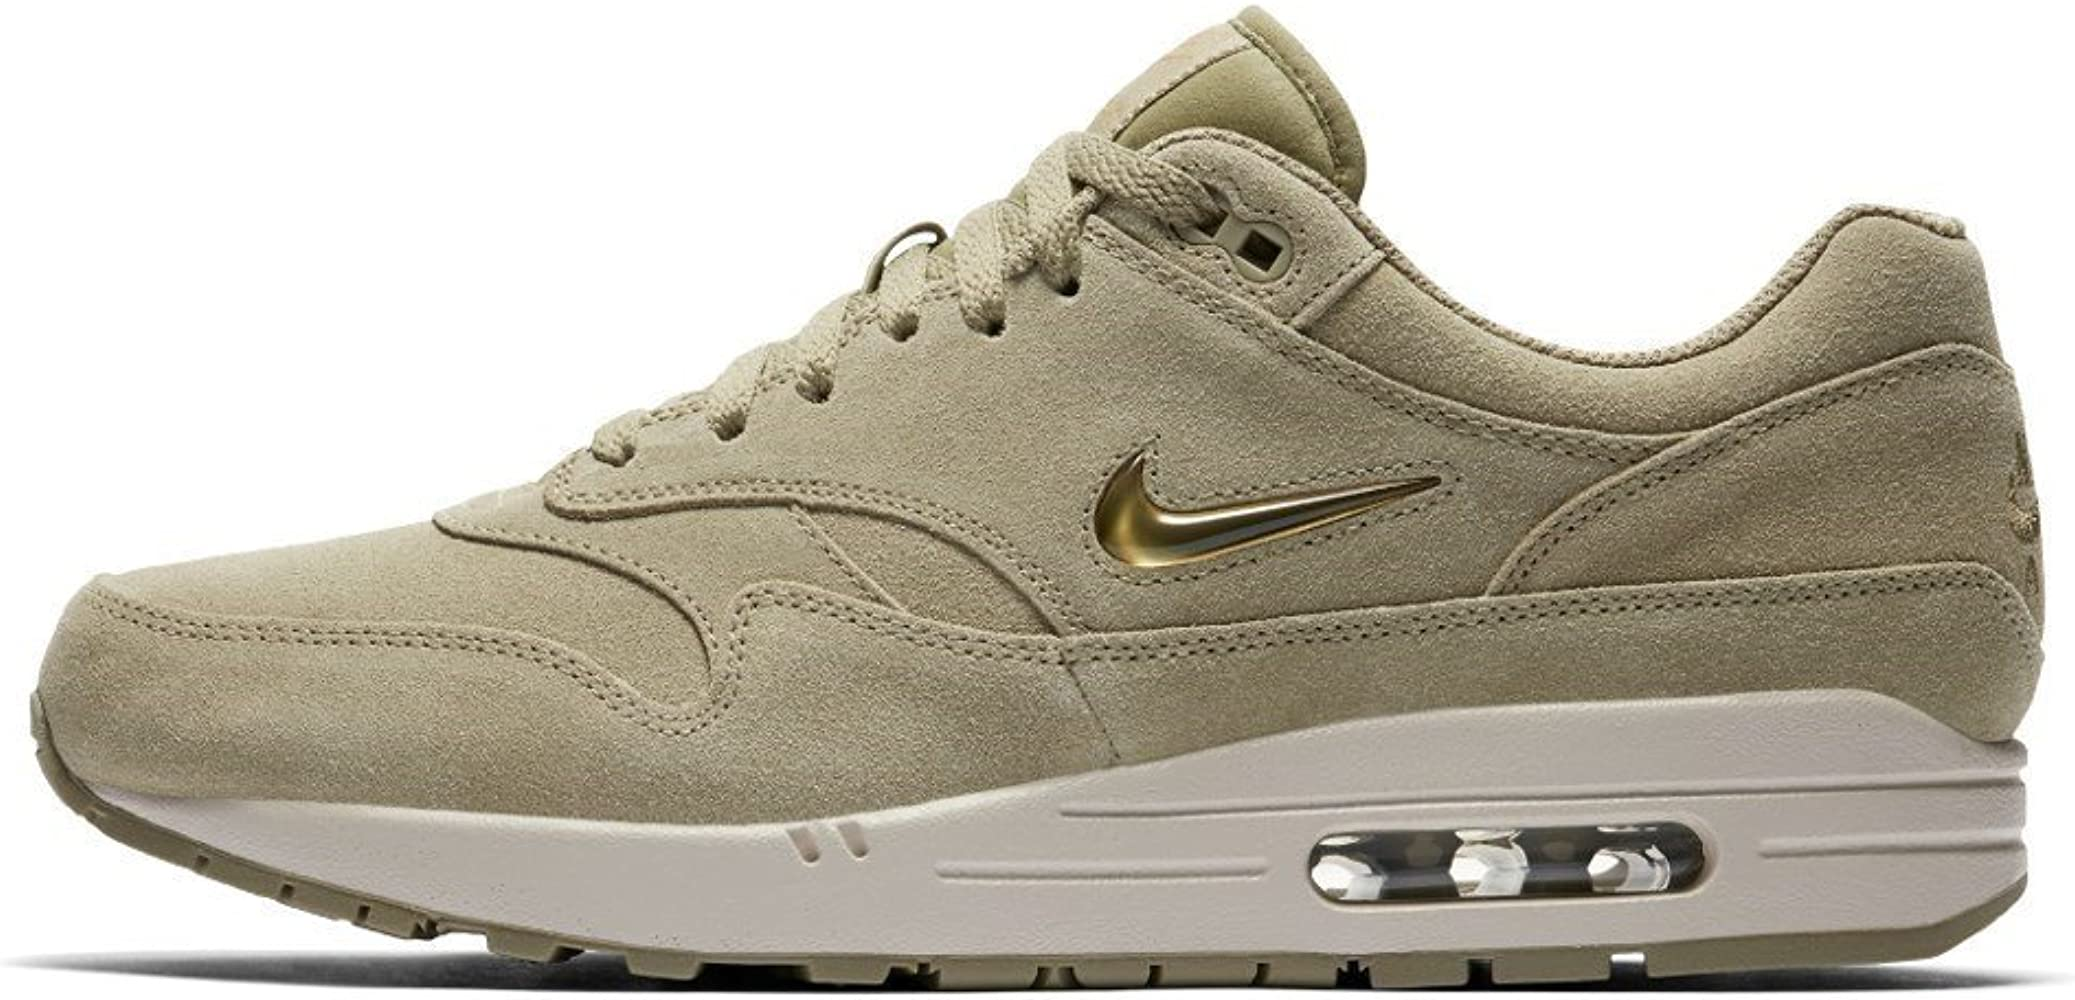 e355a75770669 NIKEE Air Max 1 Premium SC Mens Running Shoes Size 12 Neutral  Olive/Metallic Gold